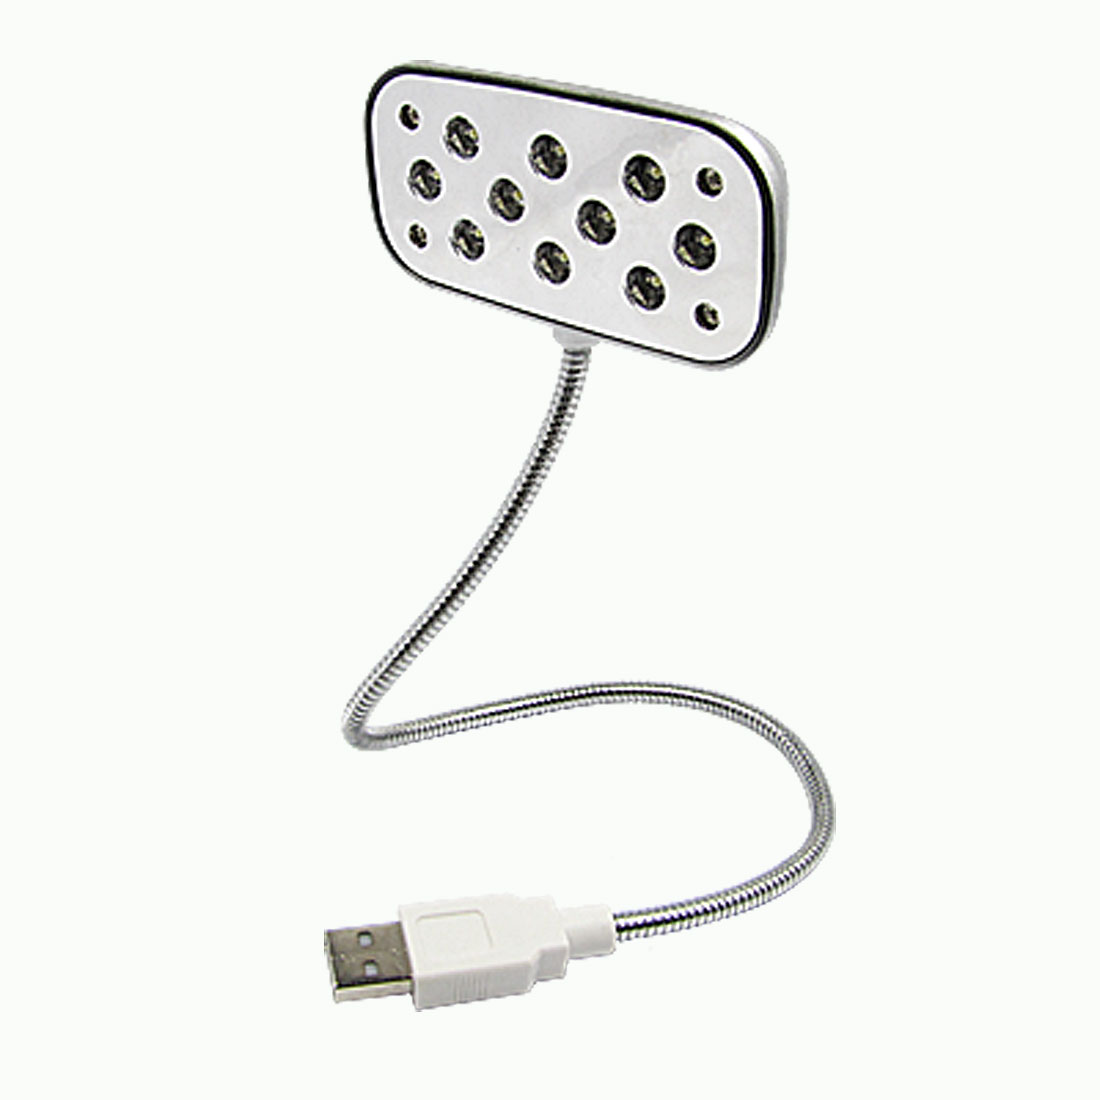 Laptop 10 LED Lamp PC Flexible Gooseneck USB 2.0 Light